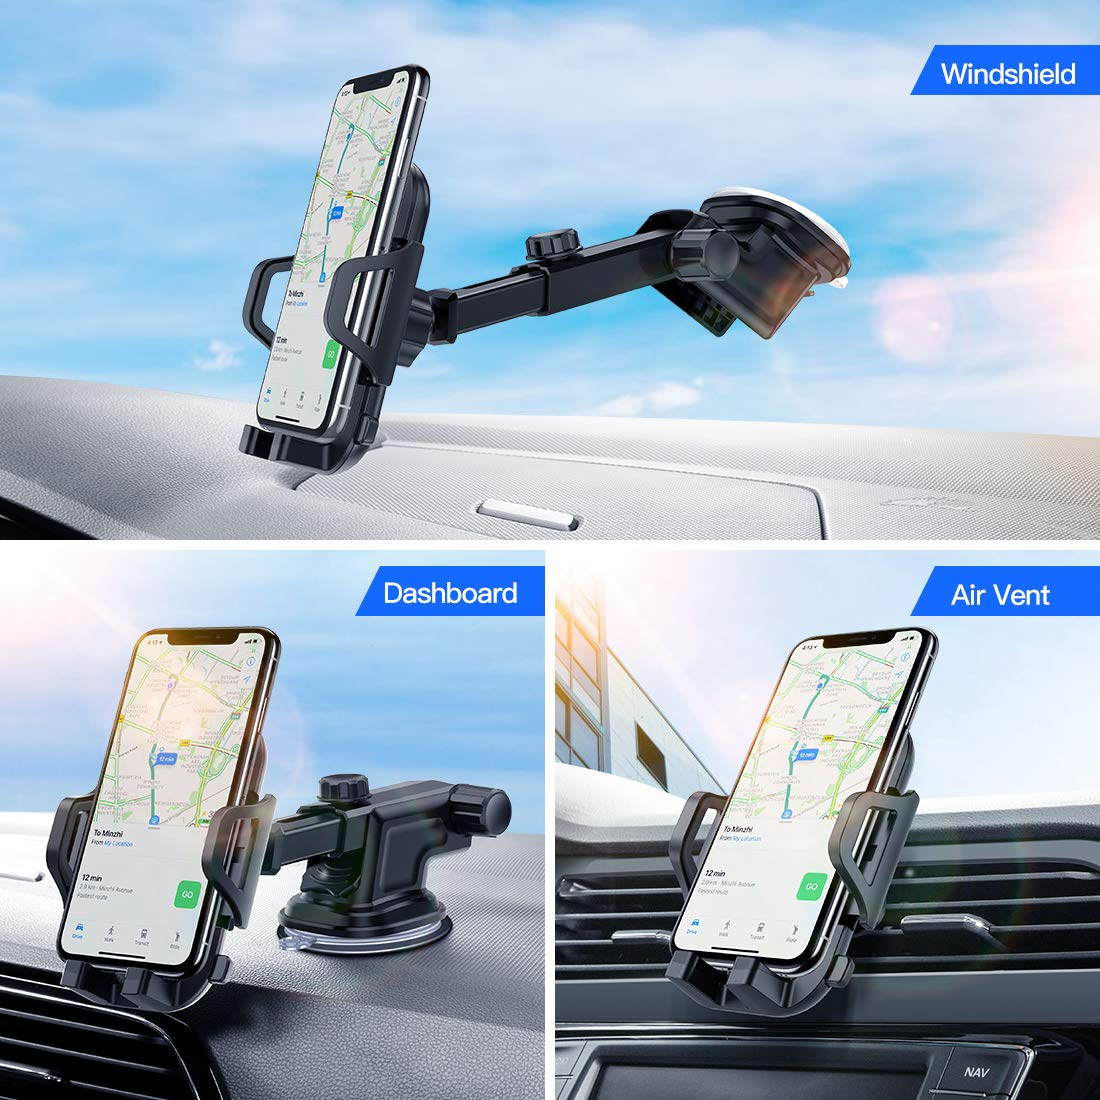 53ada0eaafb8b0 Amazon.com: Car Phone Mount VICSEED Universal Car Phone Holder for Car  Dashboard Windshield Adjustable Long Arm Strong Suction Cell Phone Car Mount  Fit for ...